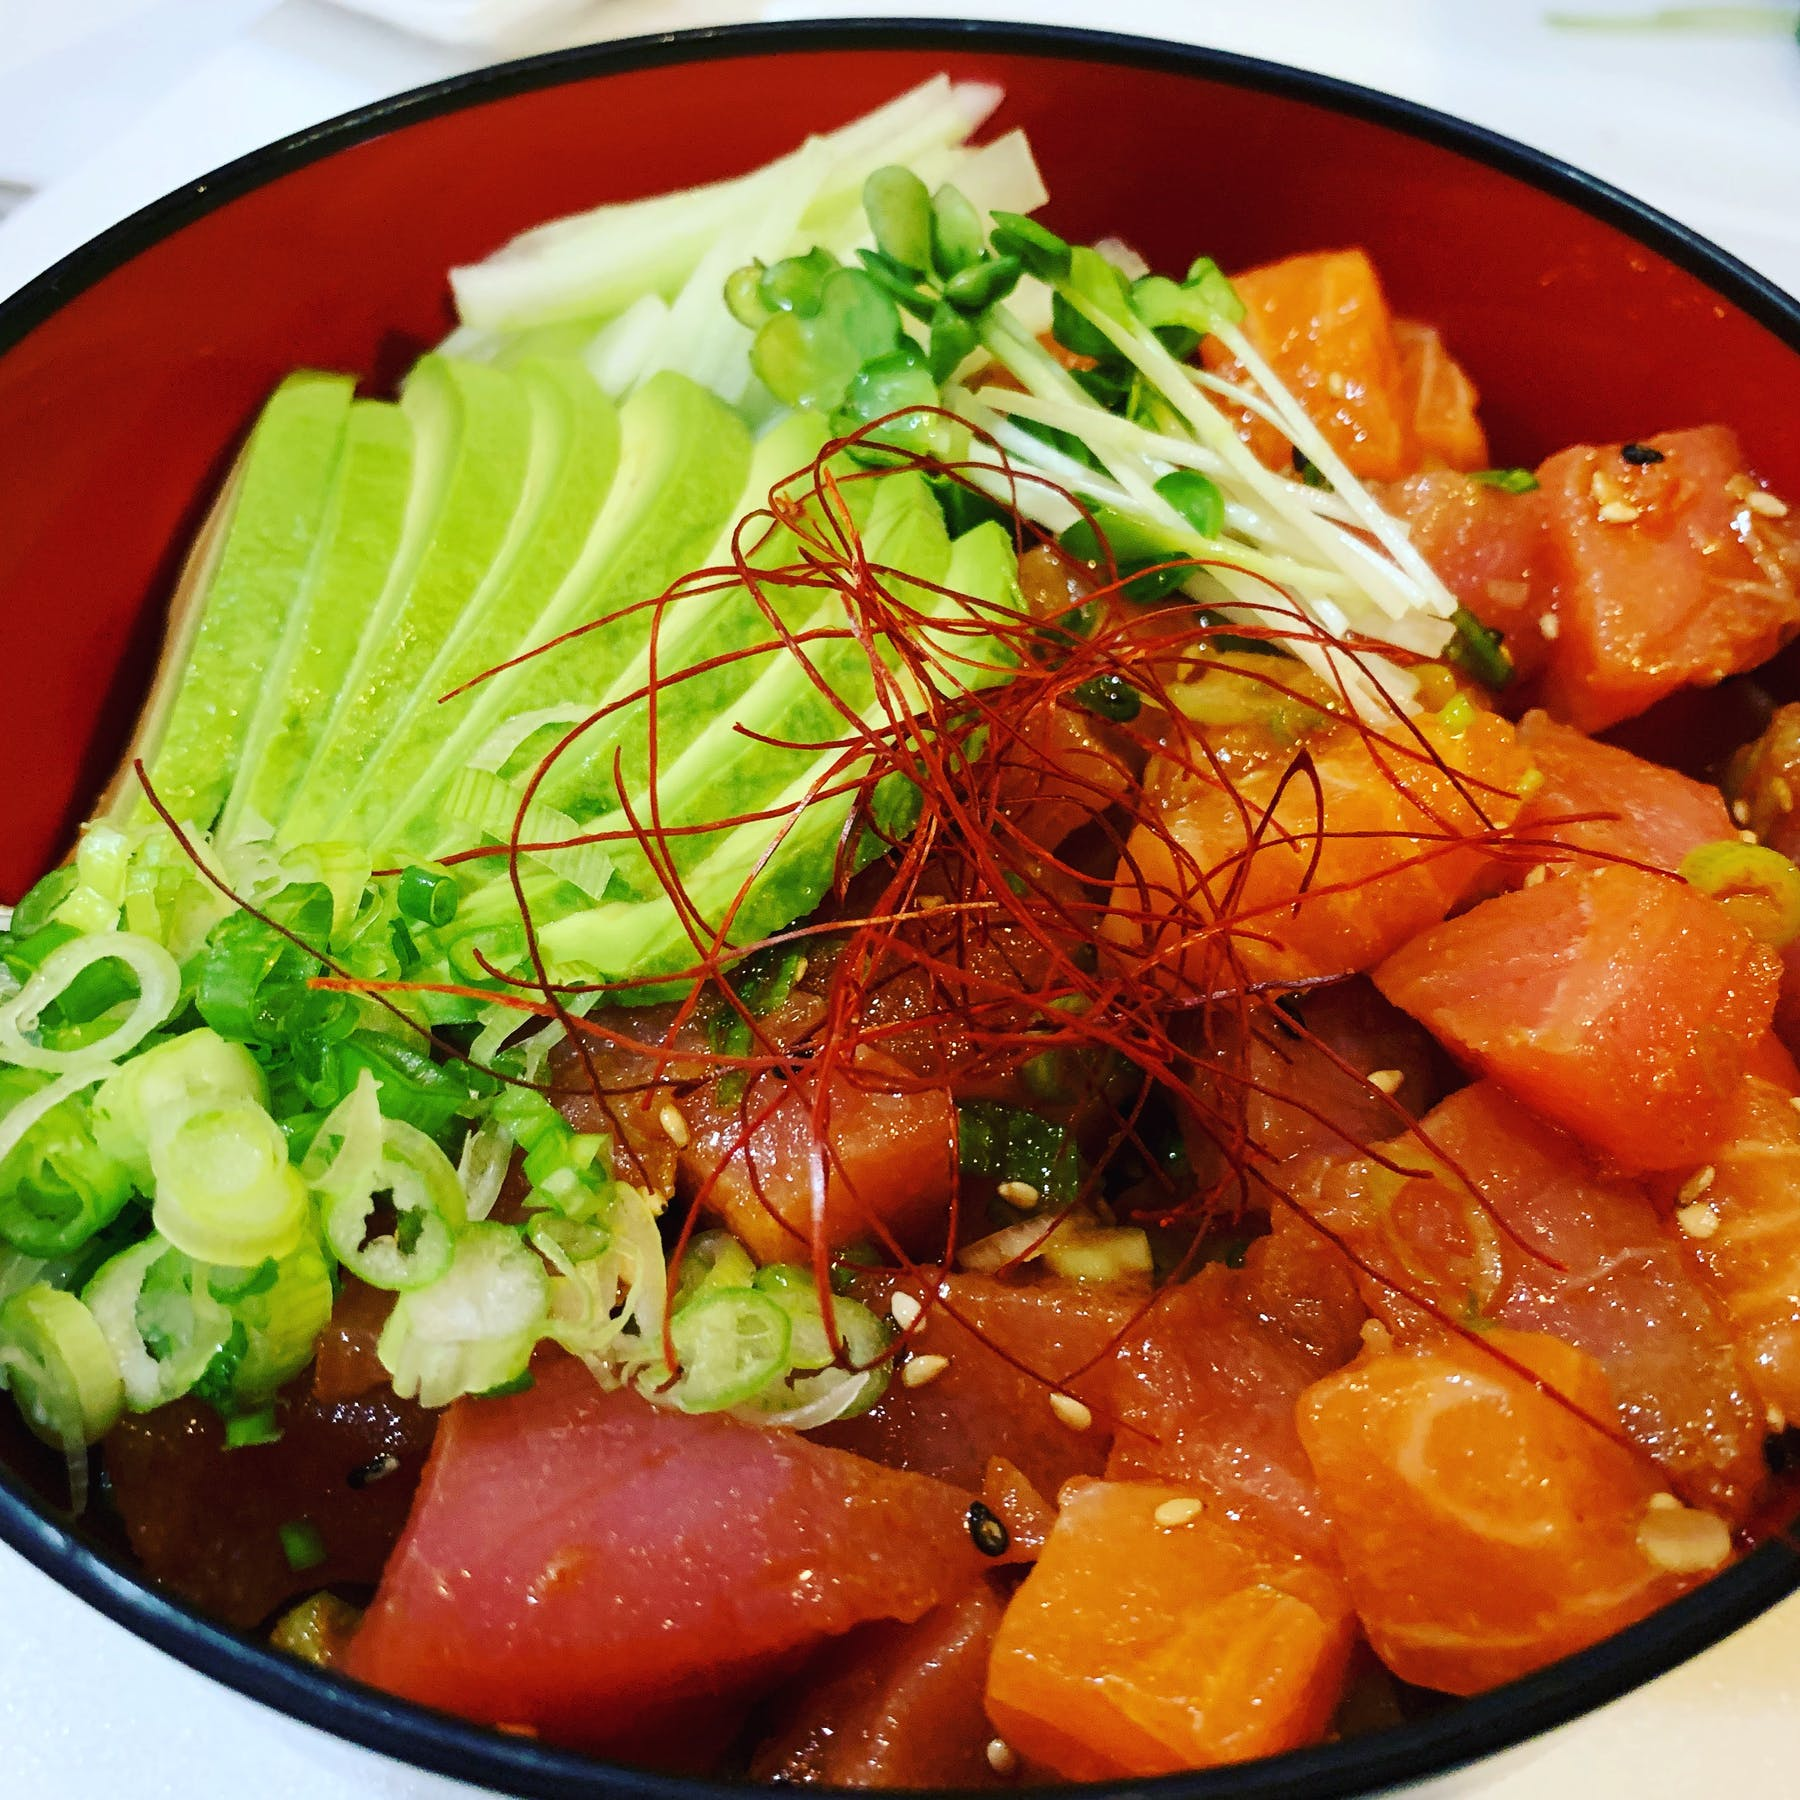 a bowl filled with meat and vegetables on a plate